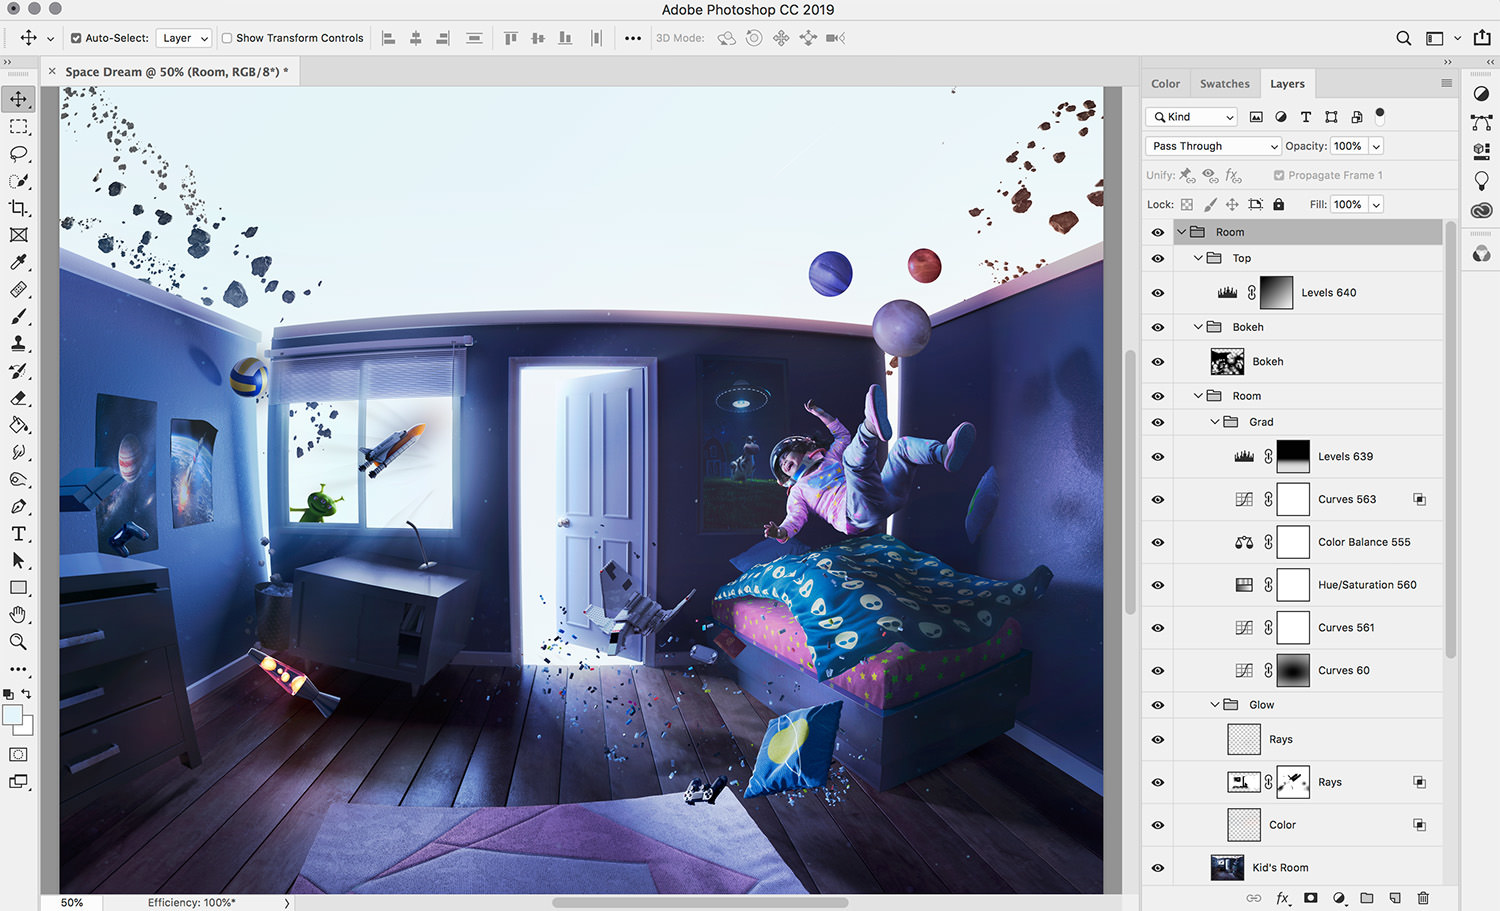 Adobe Announces Full Version of Photoshop CC for iPad | Fstoppers